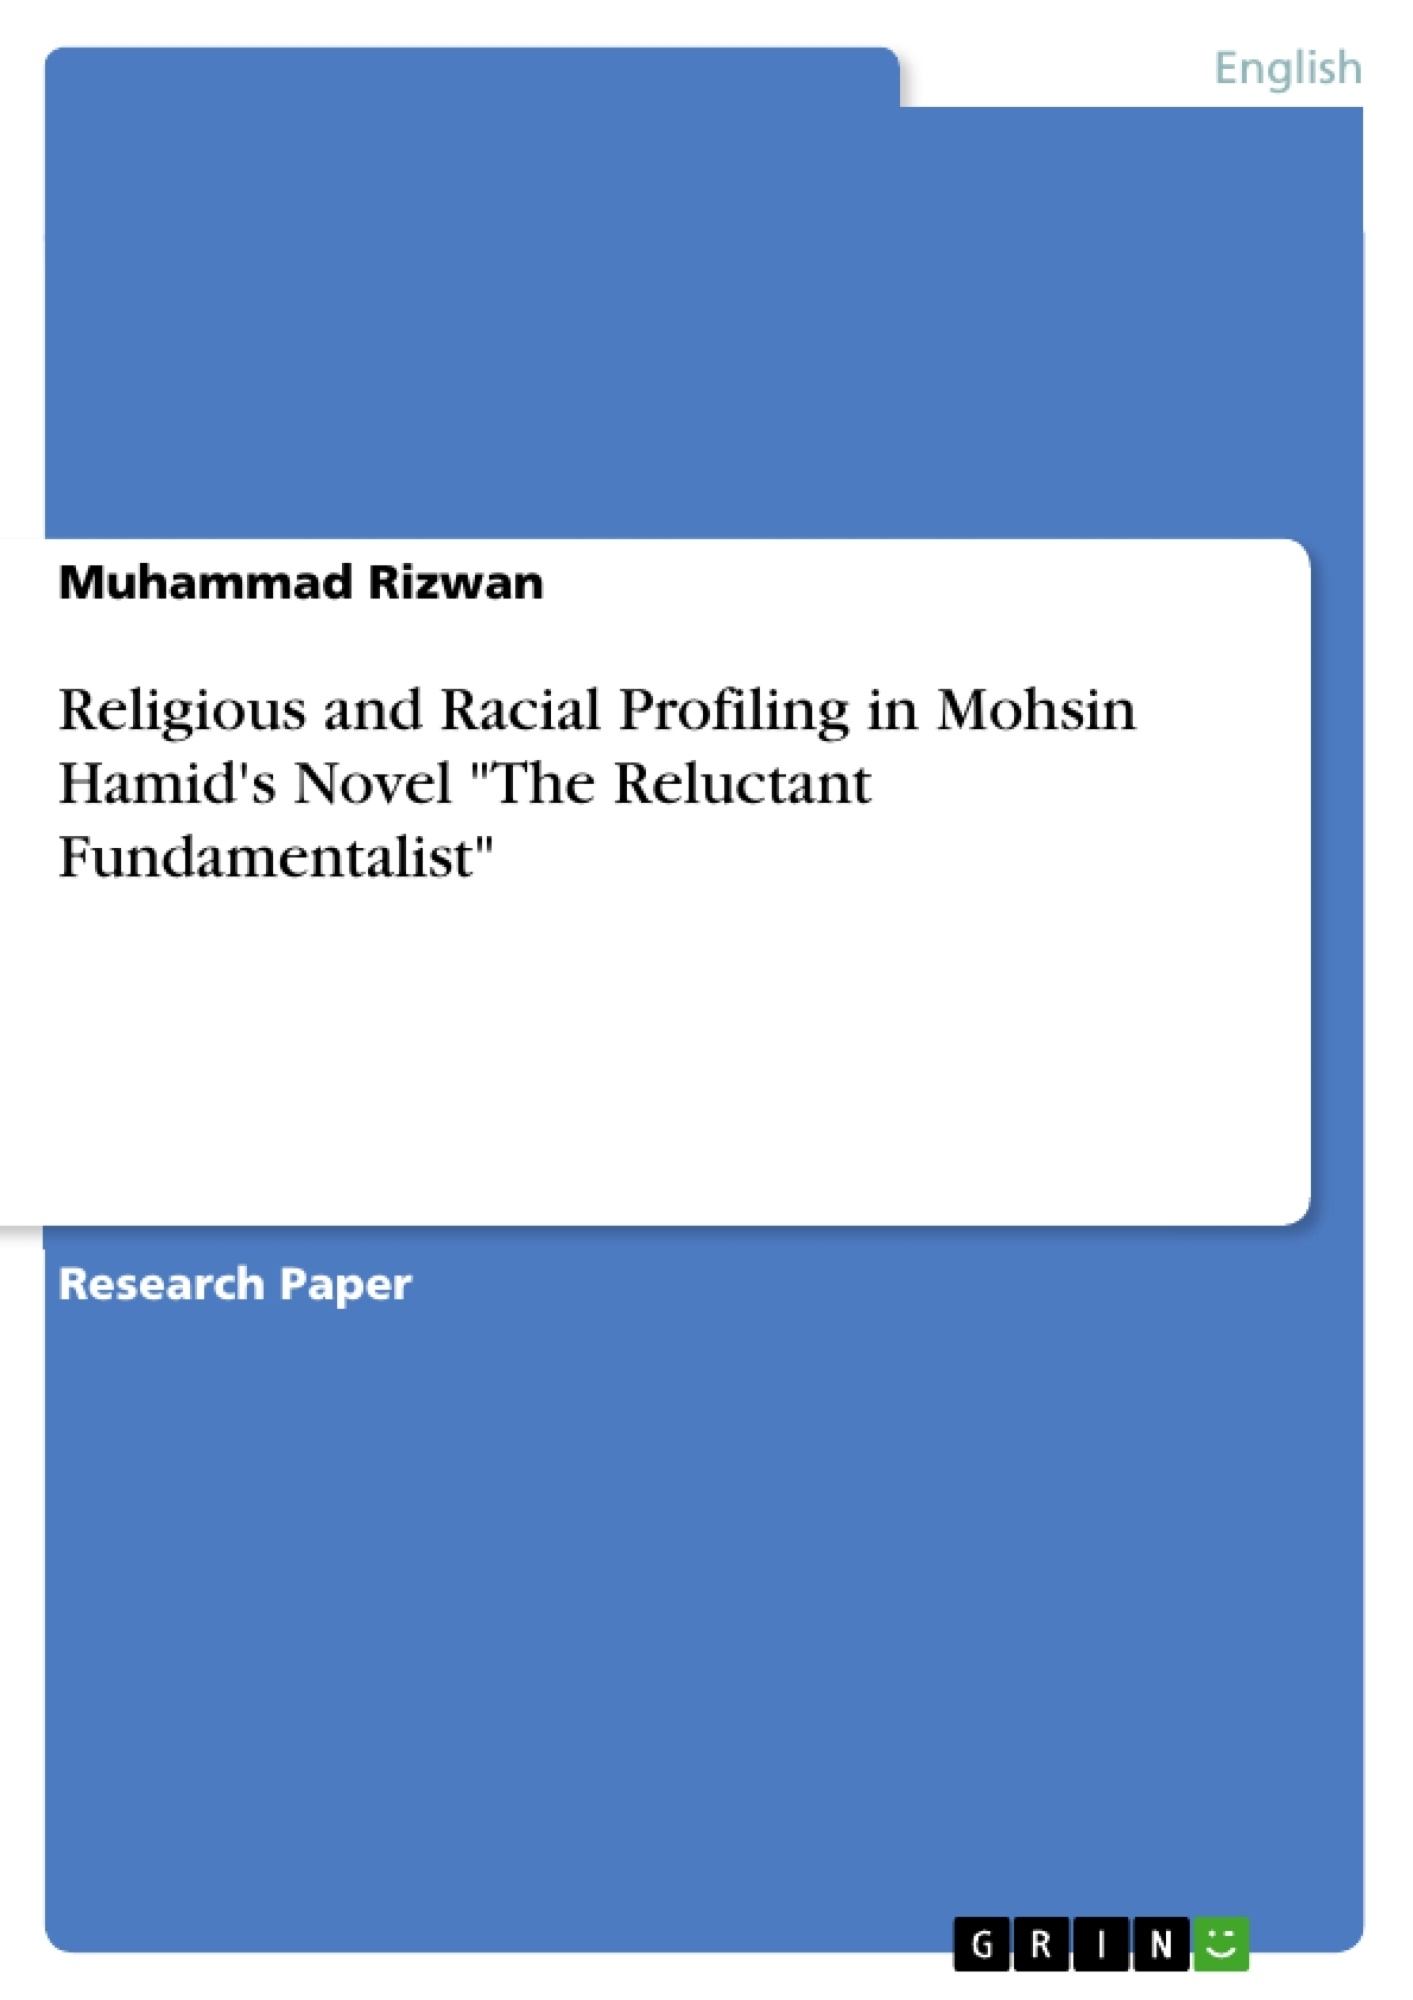 religious and racial profiling in mohsin hamid s novel the religious and racial profiling in mohsin hamid s novel the publish your master s thesis bachelor s thesis essay or term paper